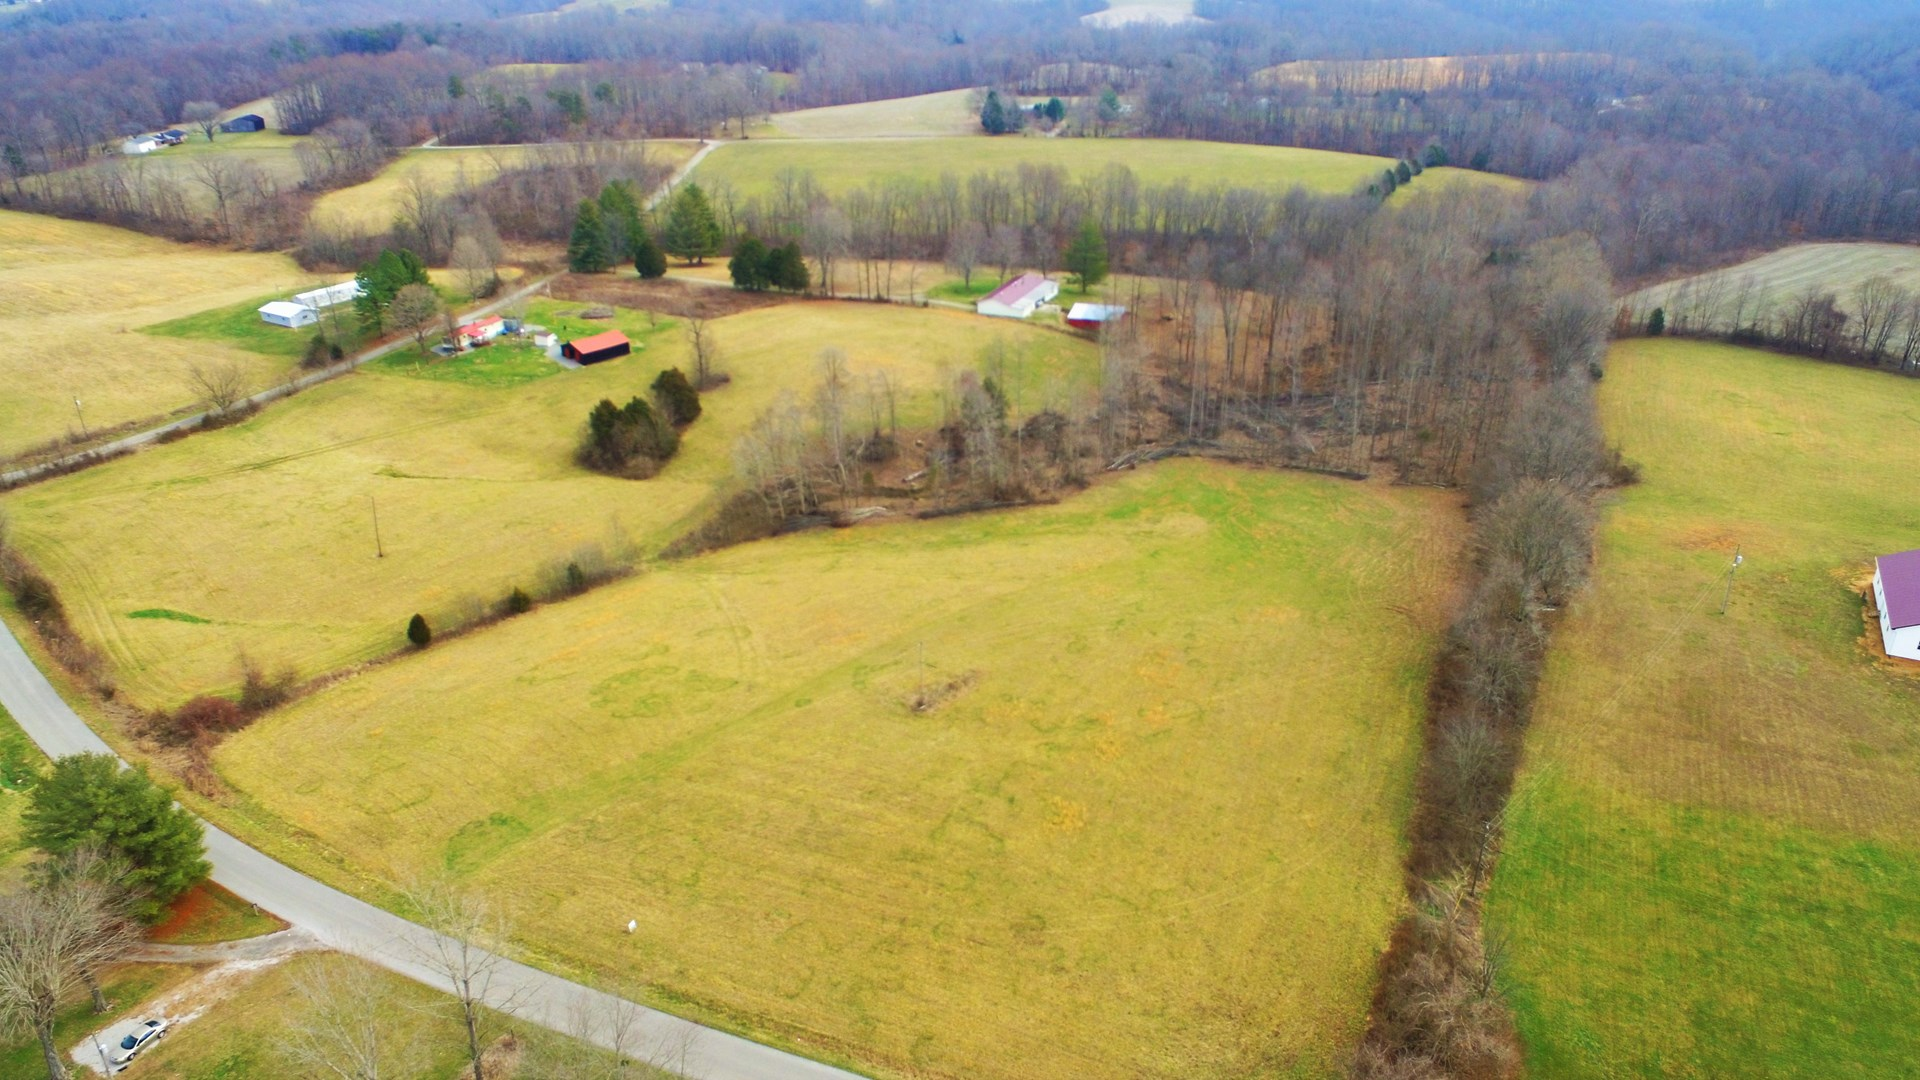 UNRESTRICTED ACREAGE-6.38 ACRES-BUILDING LOT-CASEY COUNTY KY